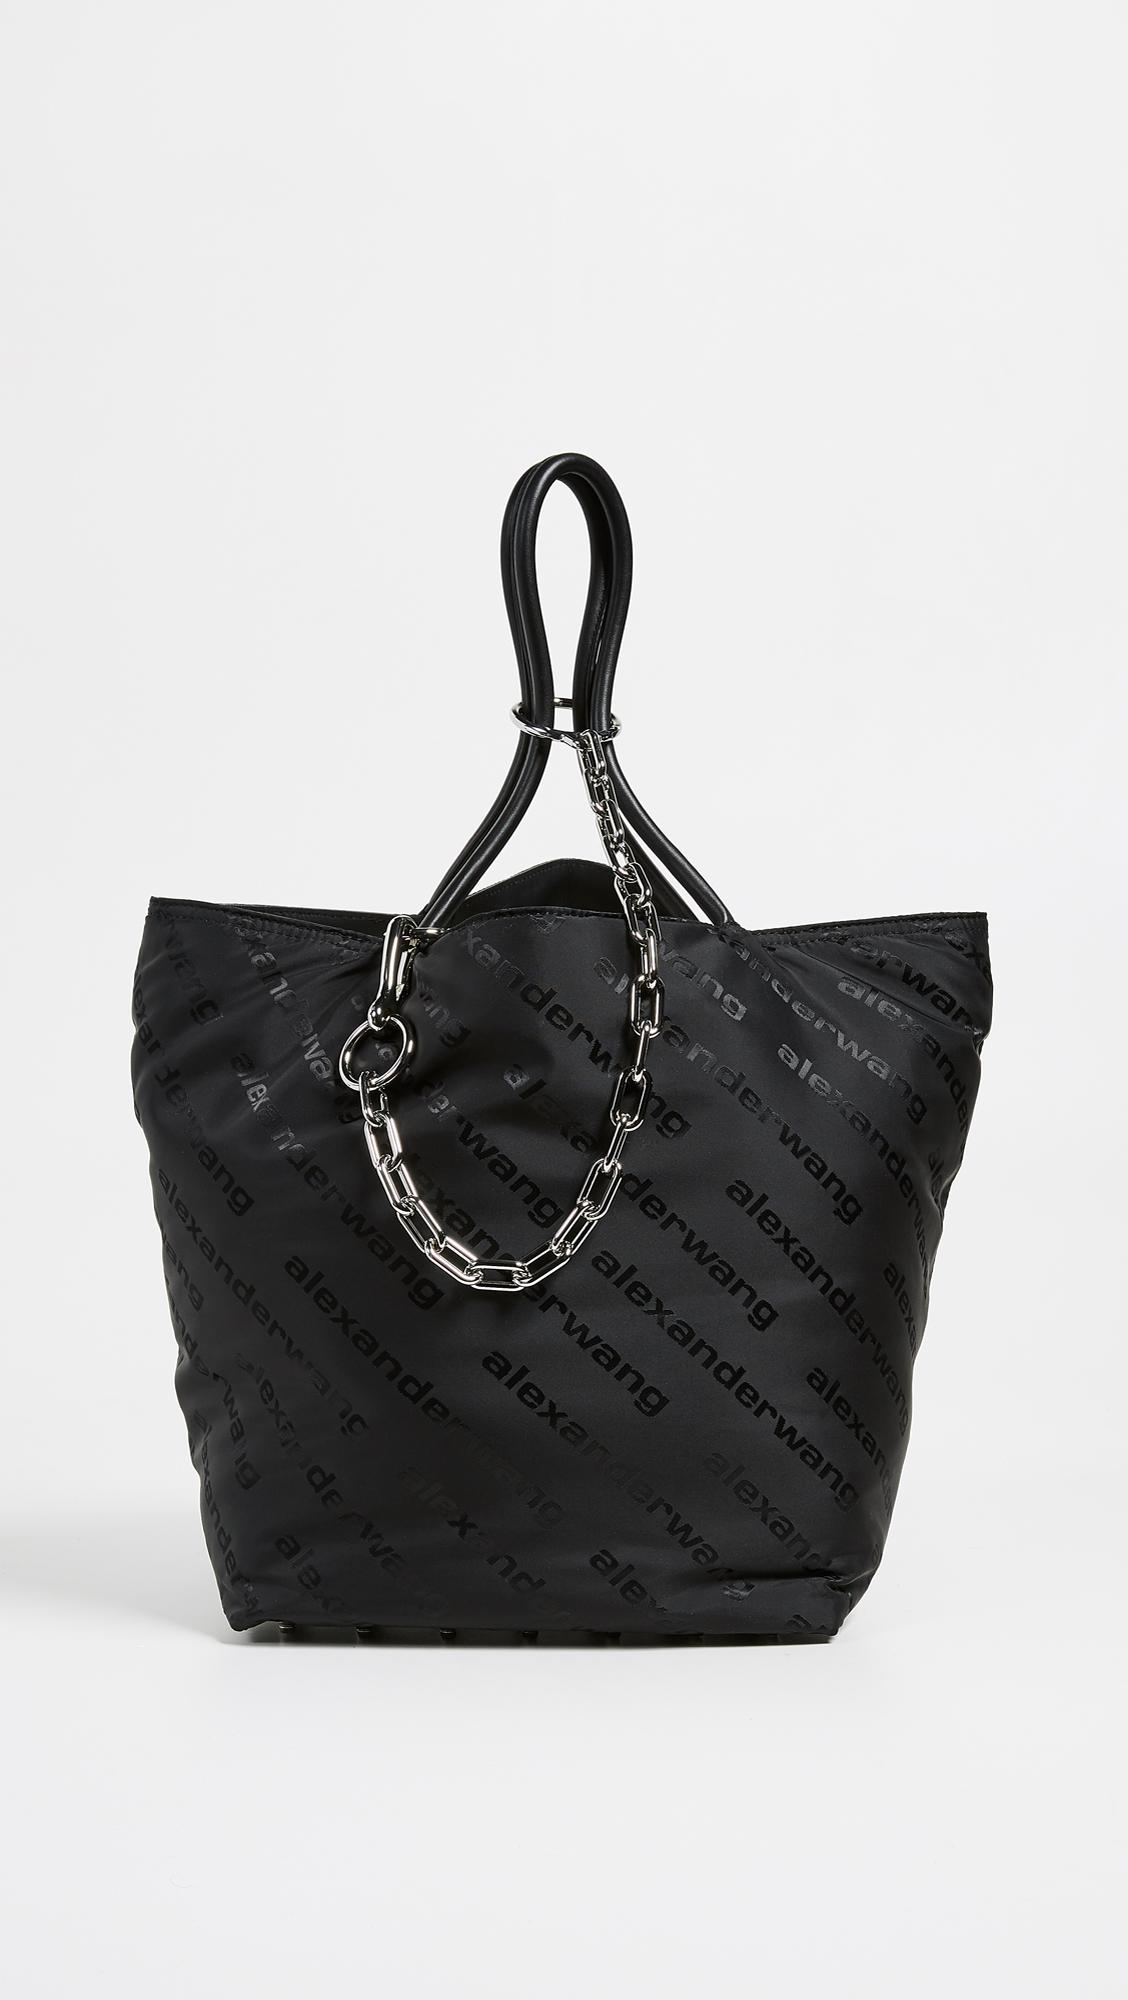 bb13ce76ae69 Alexander Wang Roxy Soft Large Tote in Black - Lyst